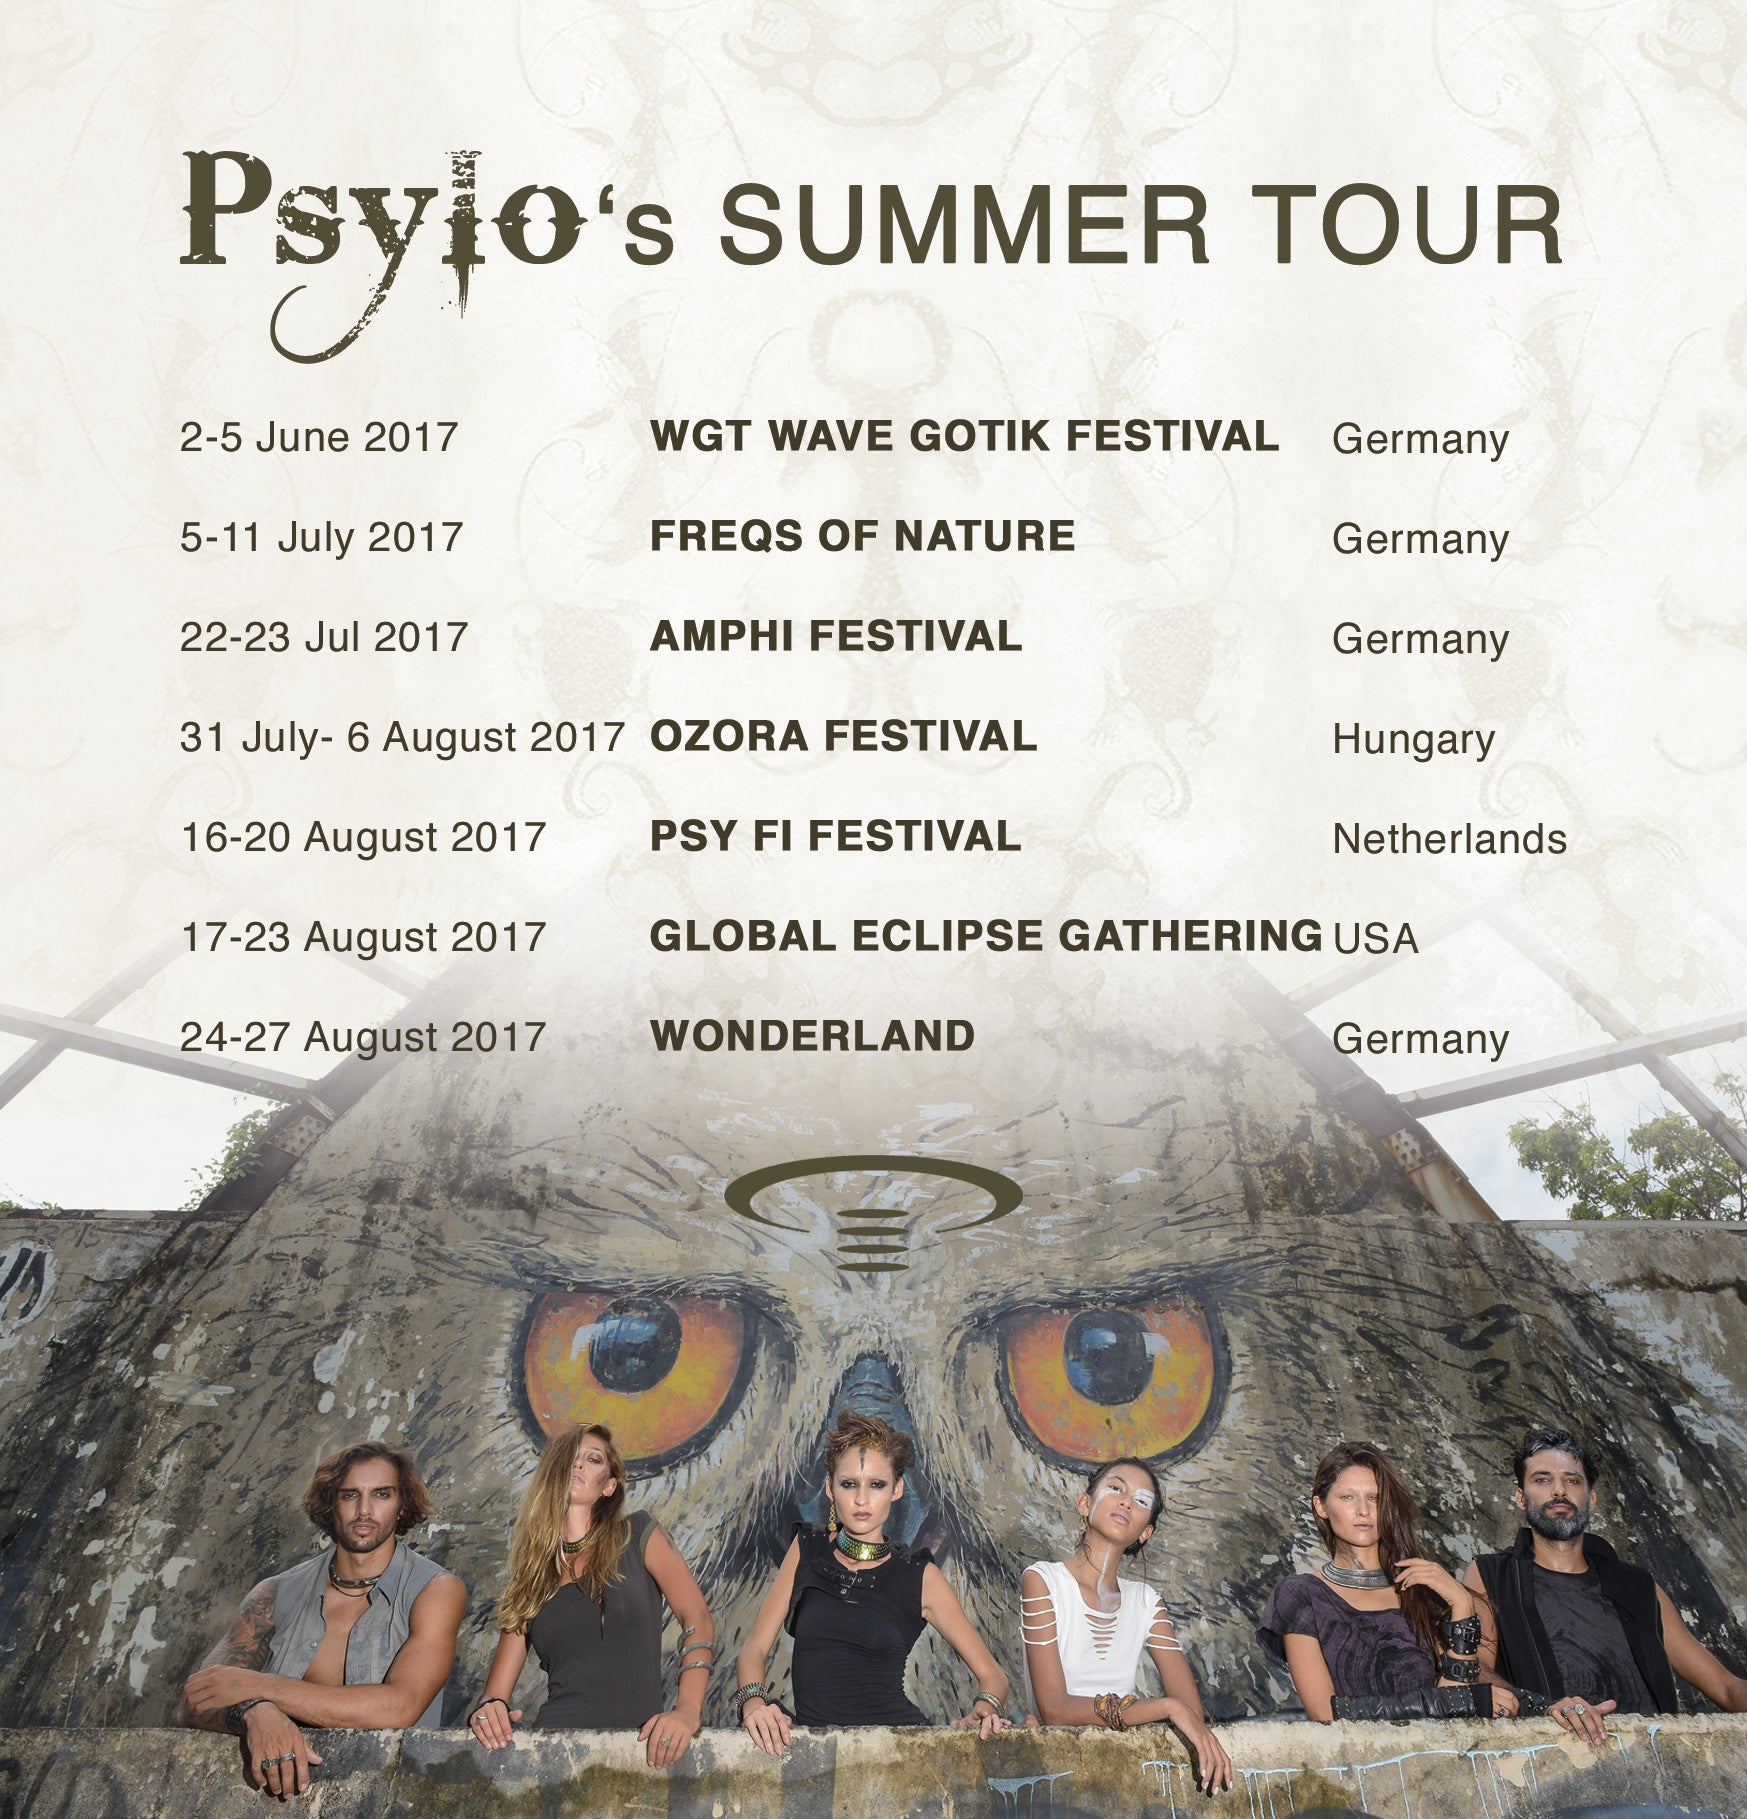 Psylo Fashion Summer 2017 Festivals Tour Dates